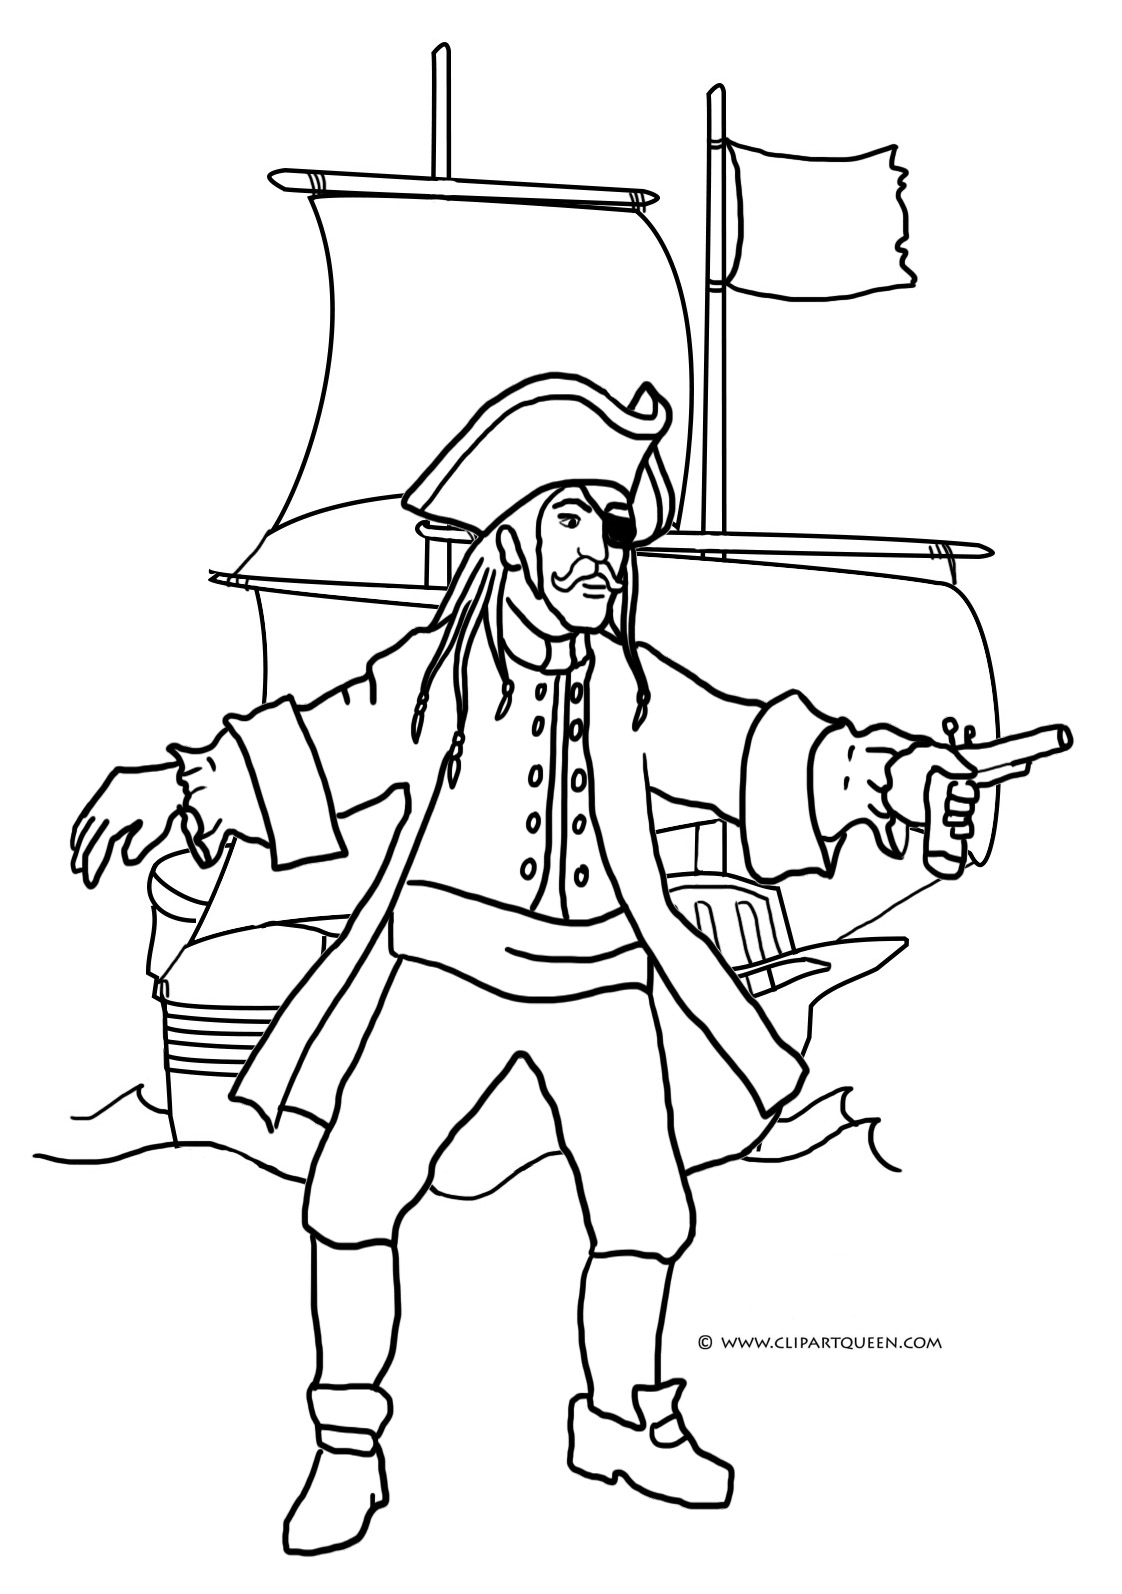 pirate coloring page ship revolver